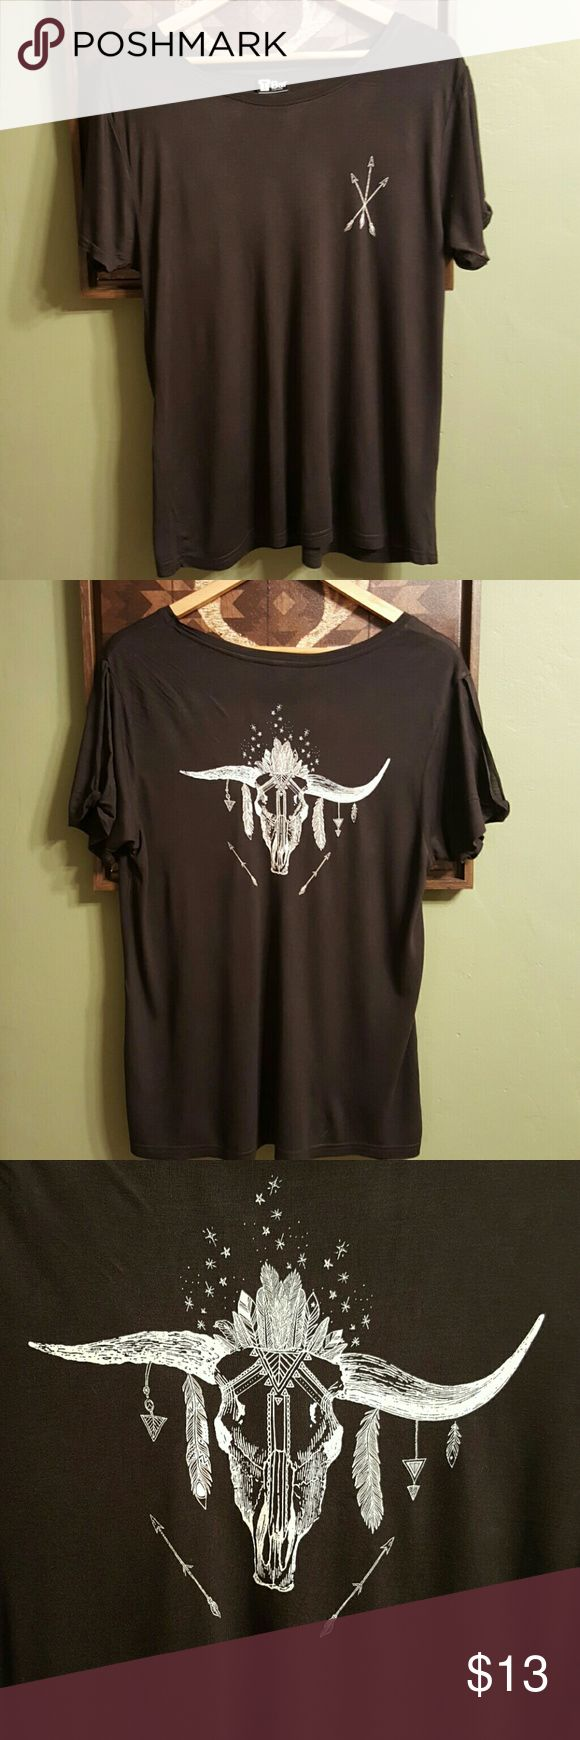 ARROW / LONG HORN SKULL WOMENS TEE - BLACK Very soft 100% cotton tee shirt. Front side has arrows, back of shirt has an image of a long horn skull/feathers/arrows. Womens size medium. Never worn! Comes from a non-smoking home. Cotton On Tops Tees - Short Sleeve